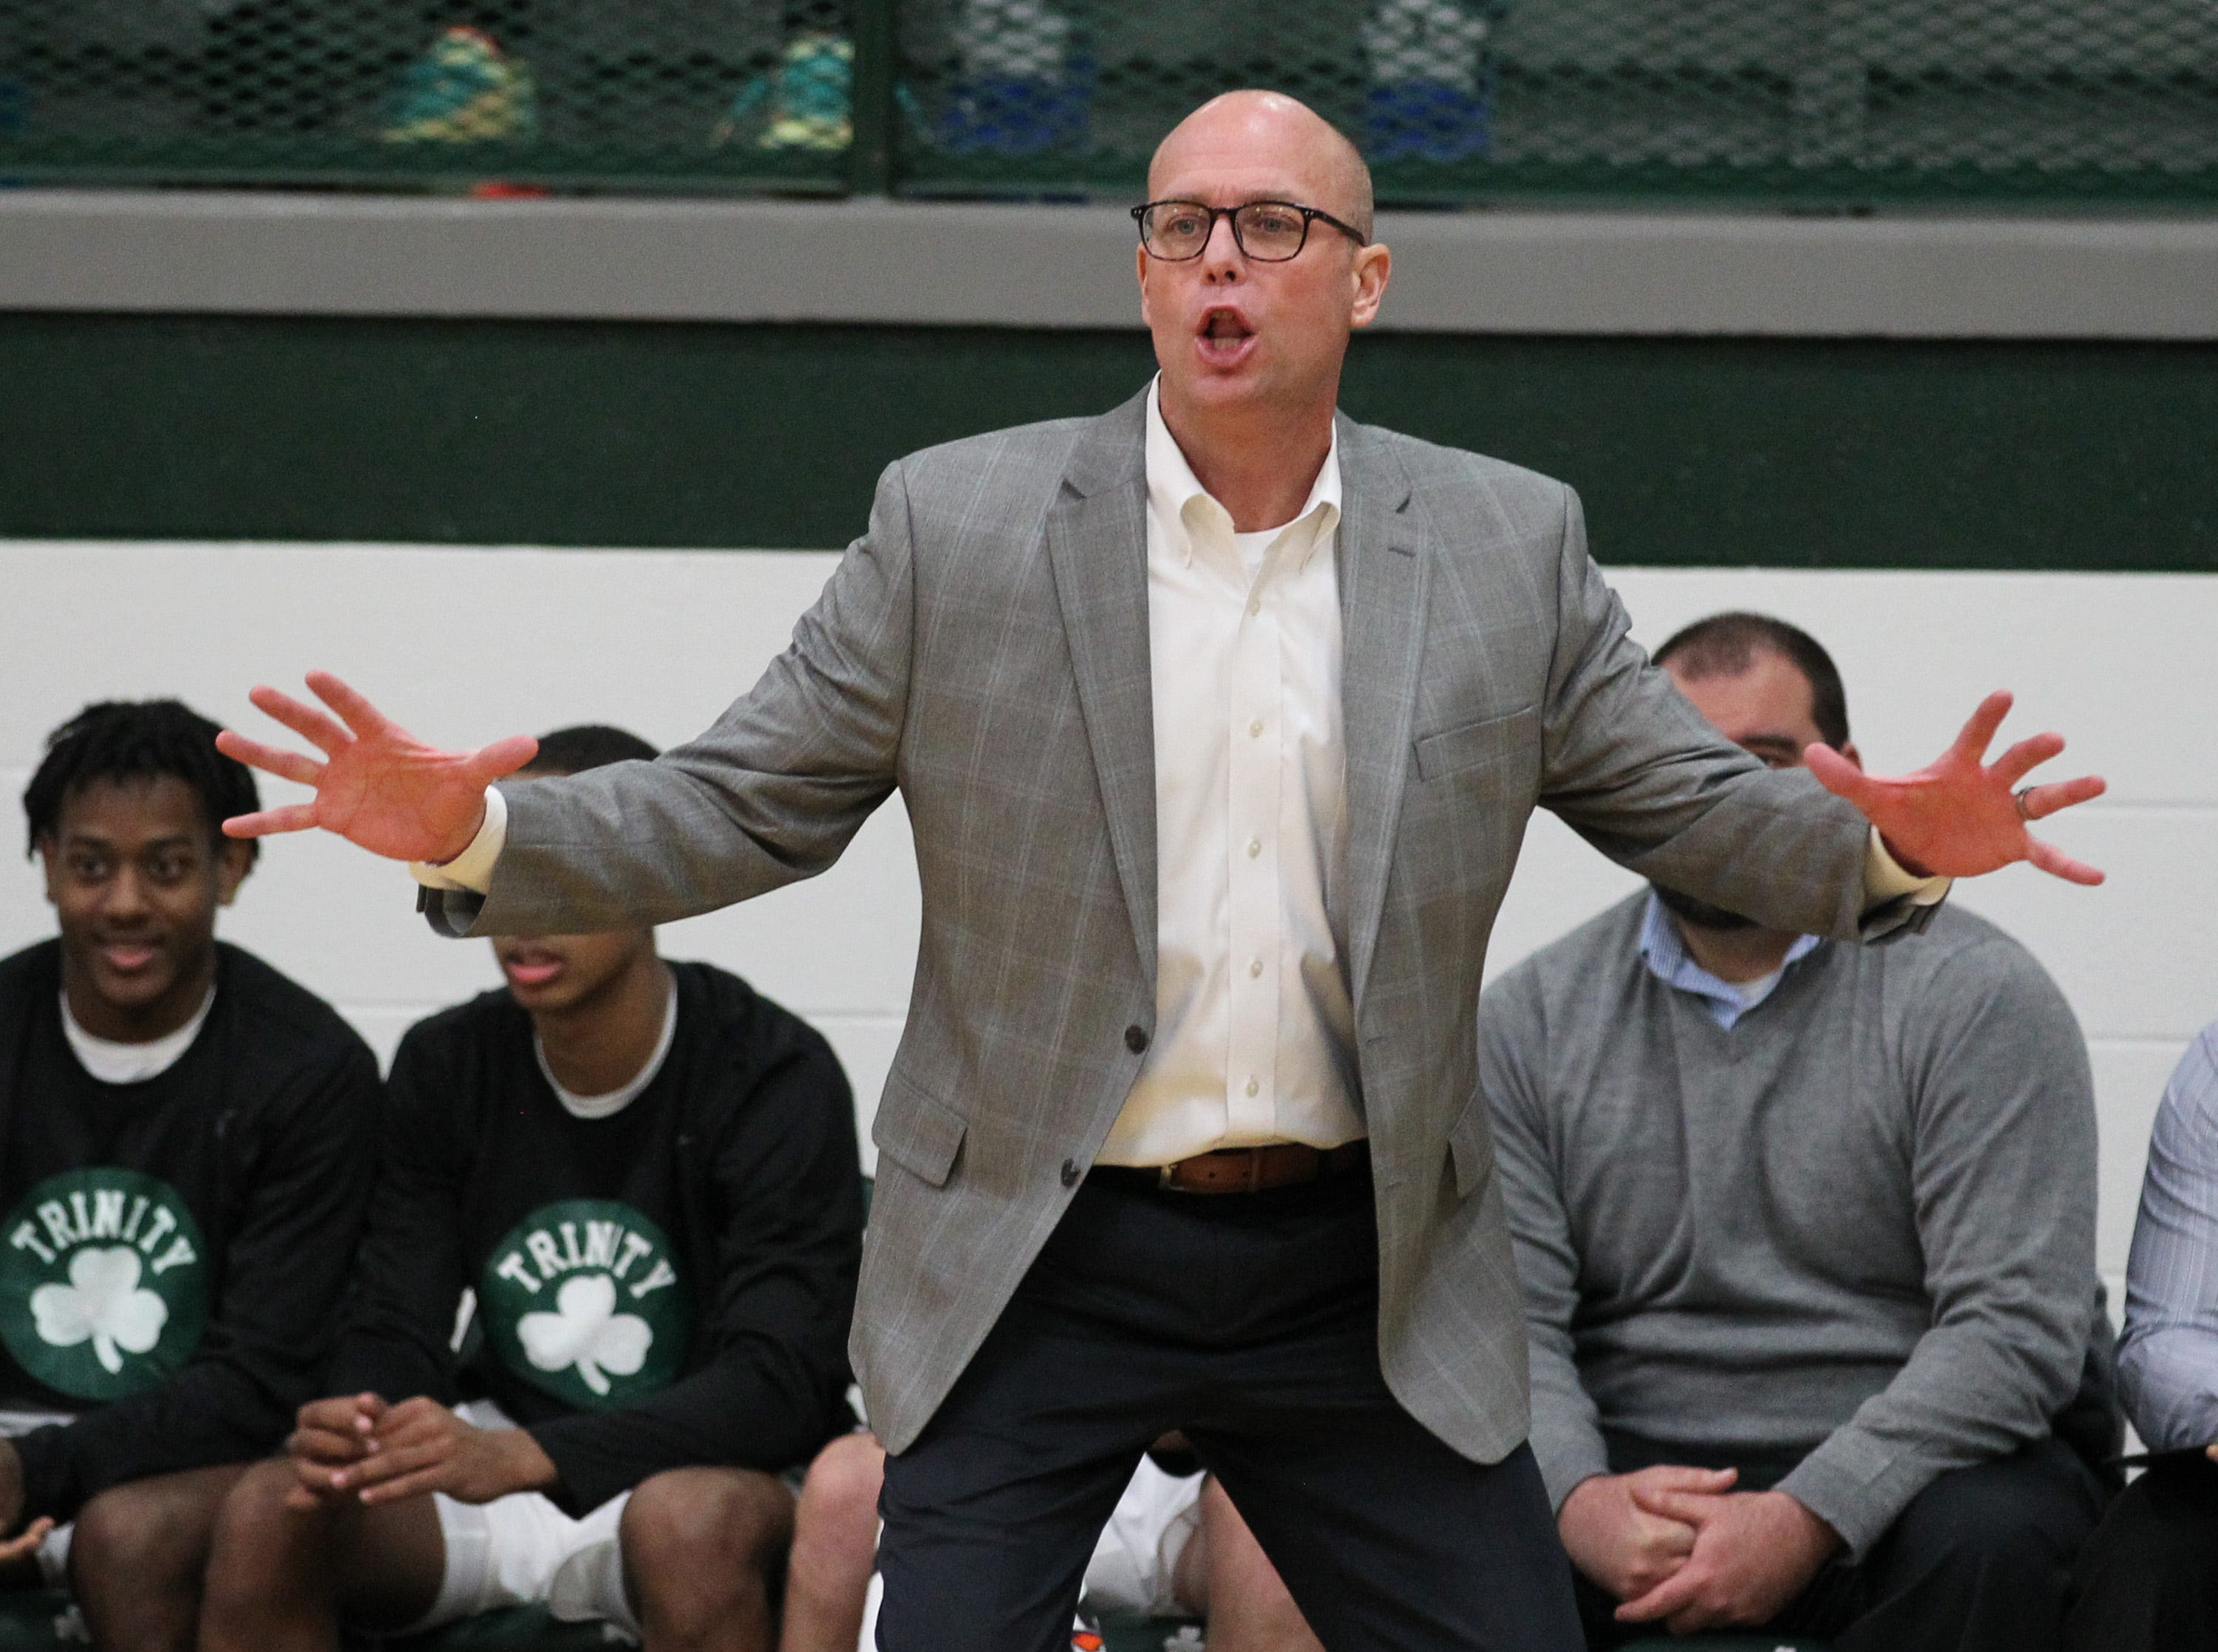 Trinity High School head coach Mike Szabo reacts to his teams plan against Waggener High School during the first half of play at Trinity High School on Jan. 11,  2019.